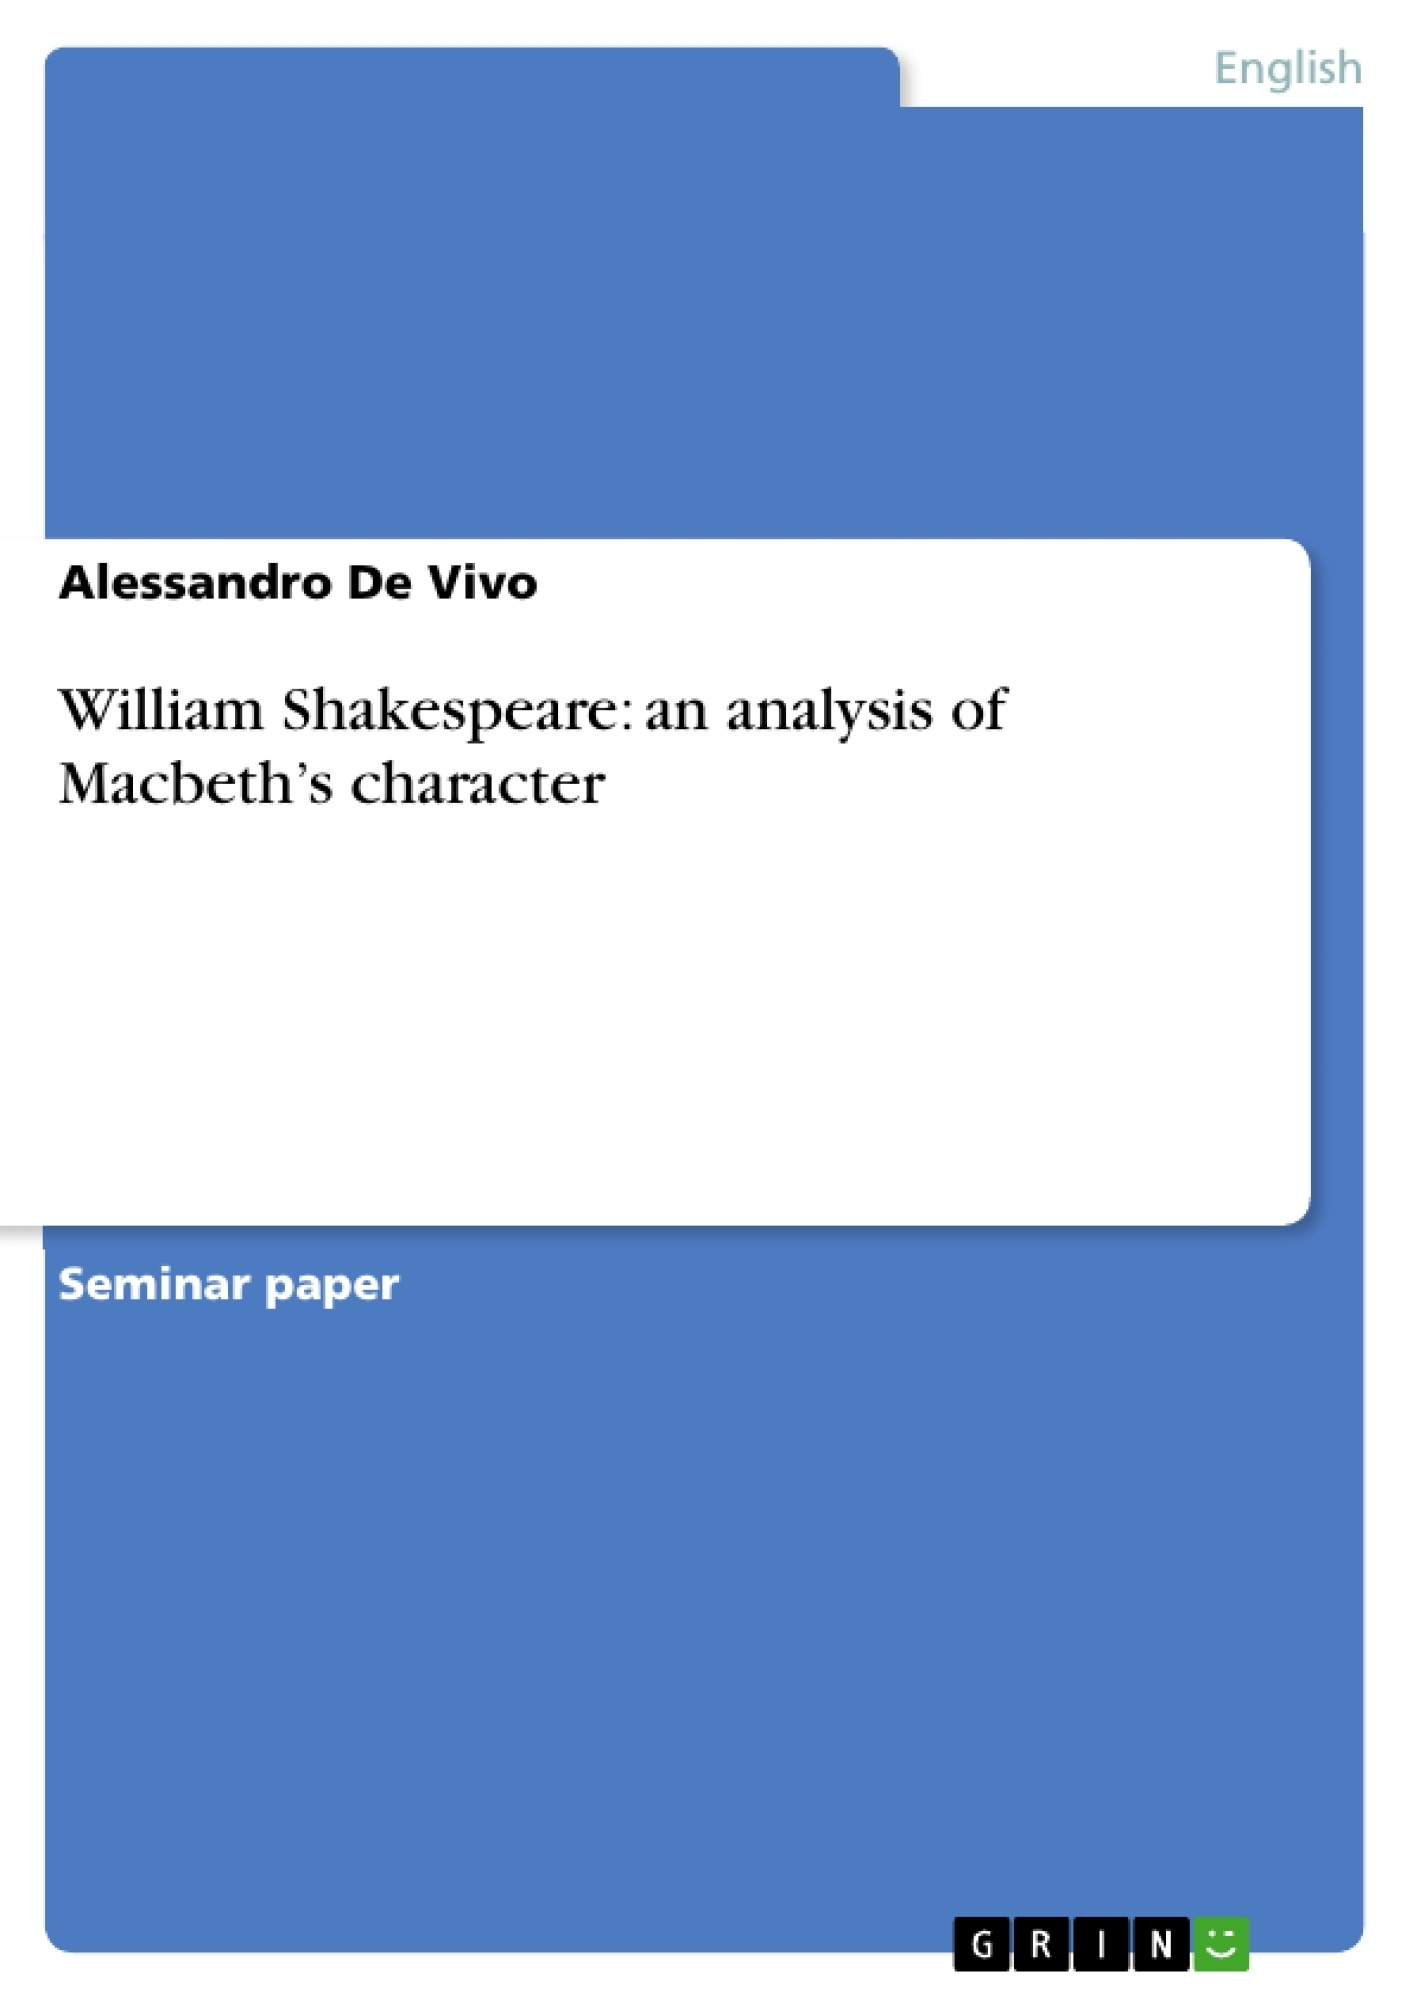 crash character analysis term papers The university of colorado discusses the different types of movie analysis papers that can be written character analysis and major free term paper writing.